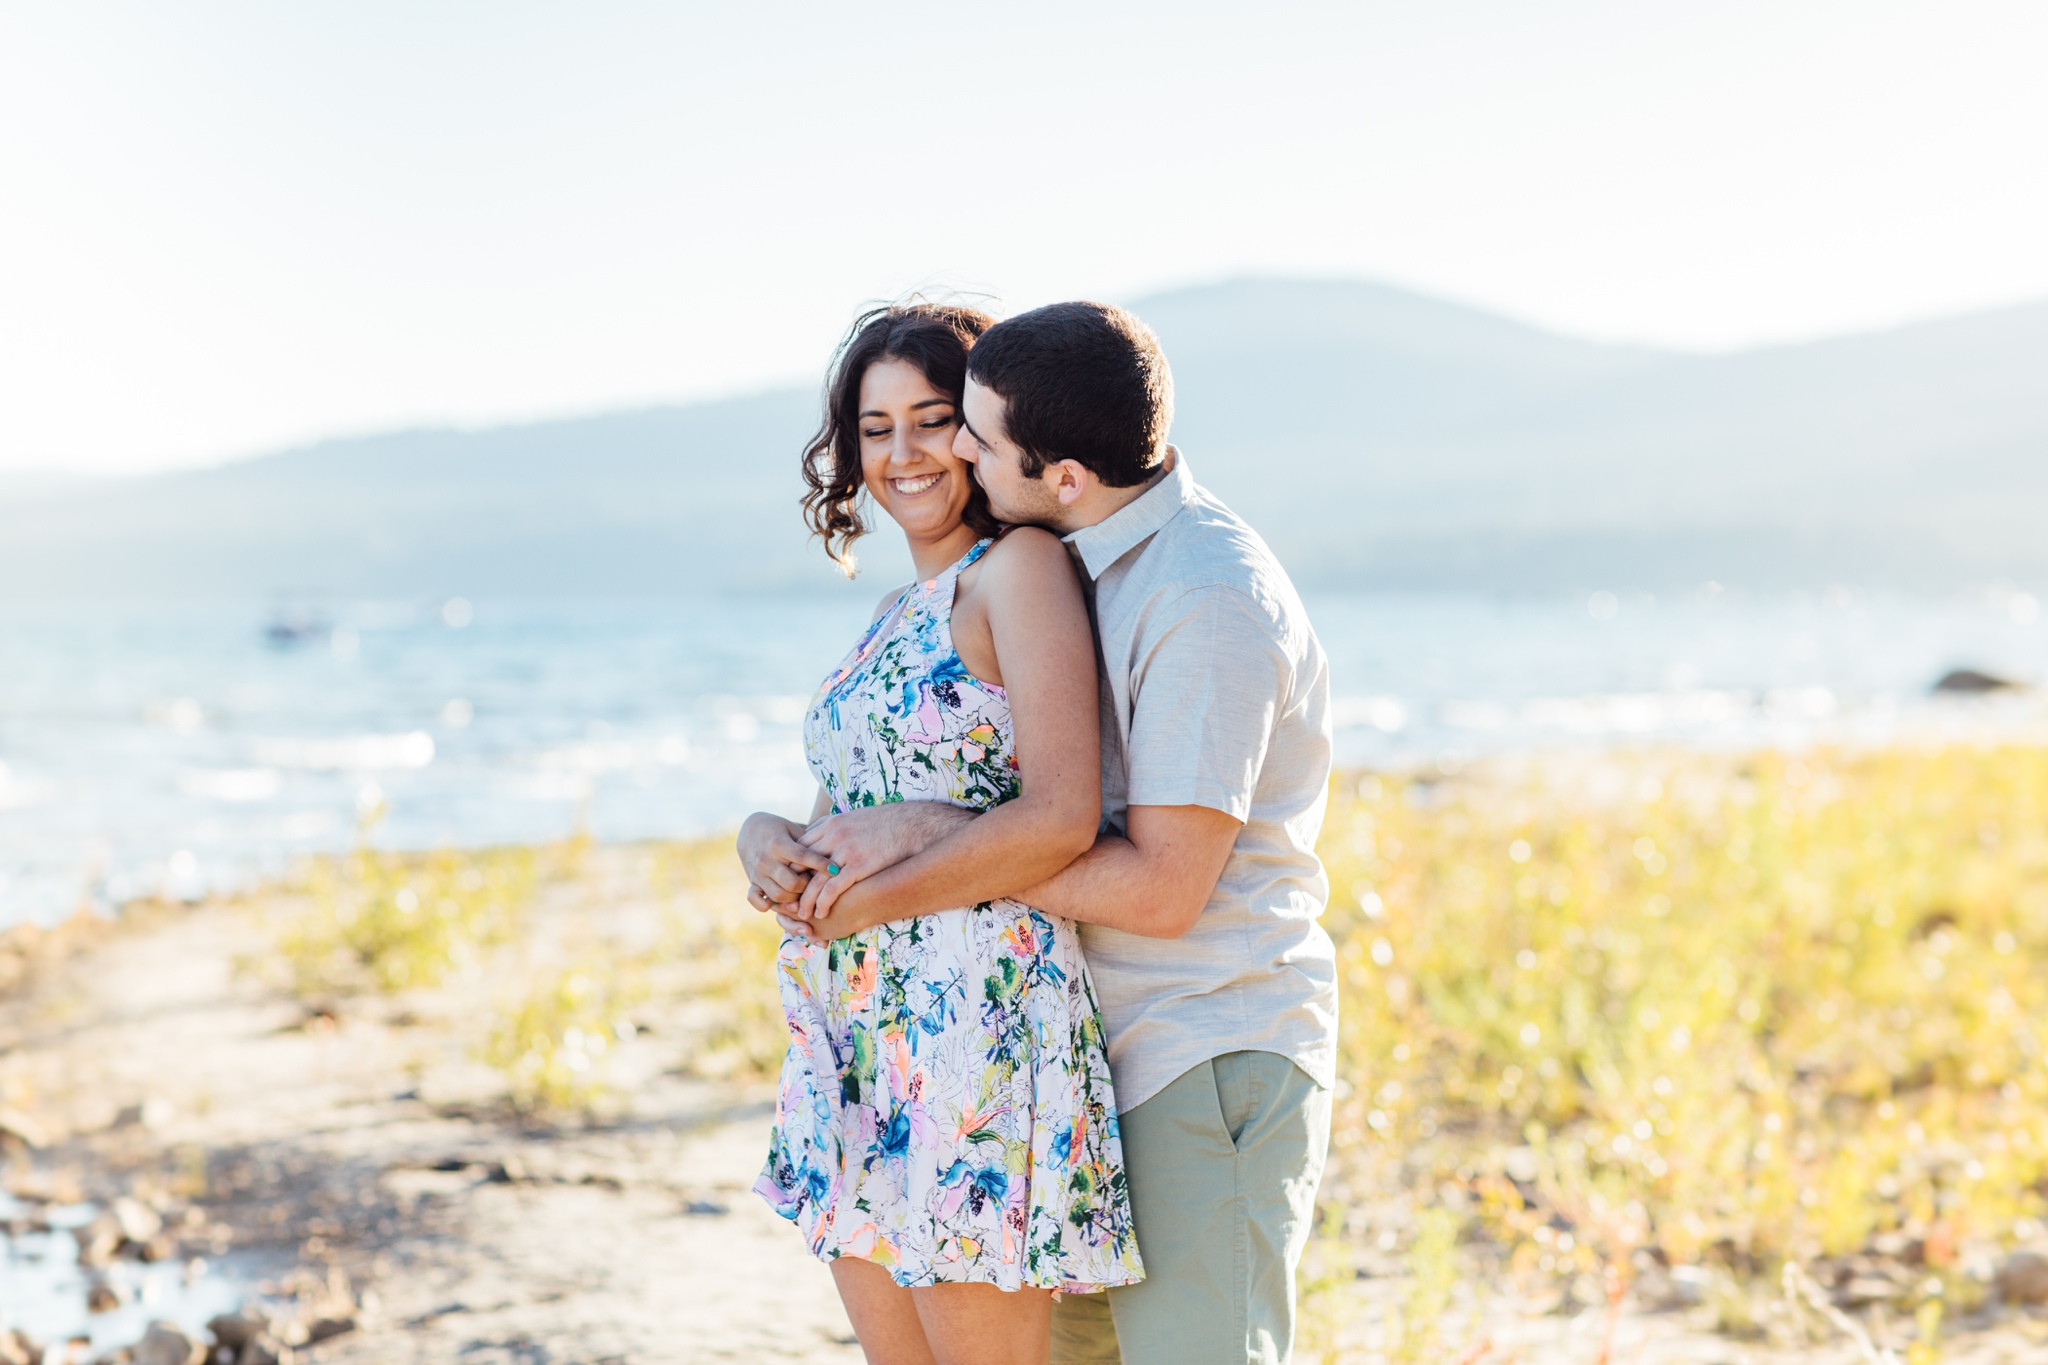 thedelauras_ostaraphotography_laketahoeengagement_laketahoeweddingphotograph_laketahoe_photographer_020